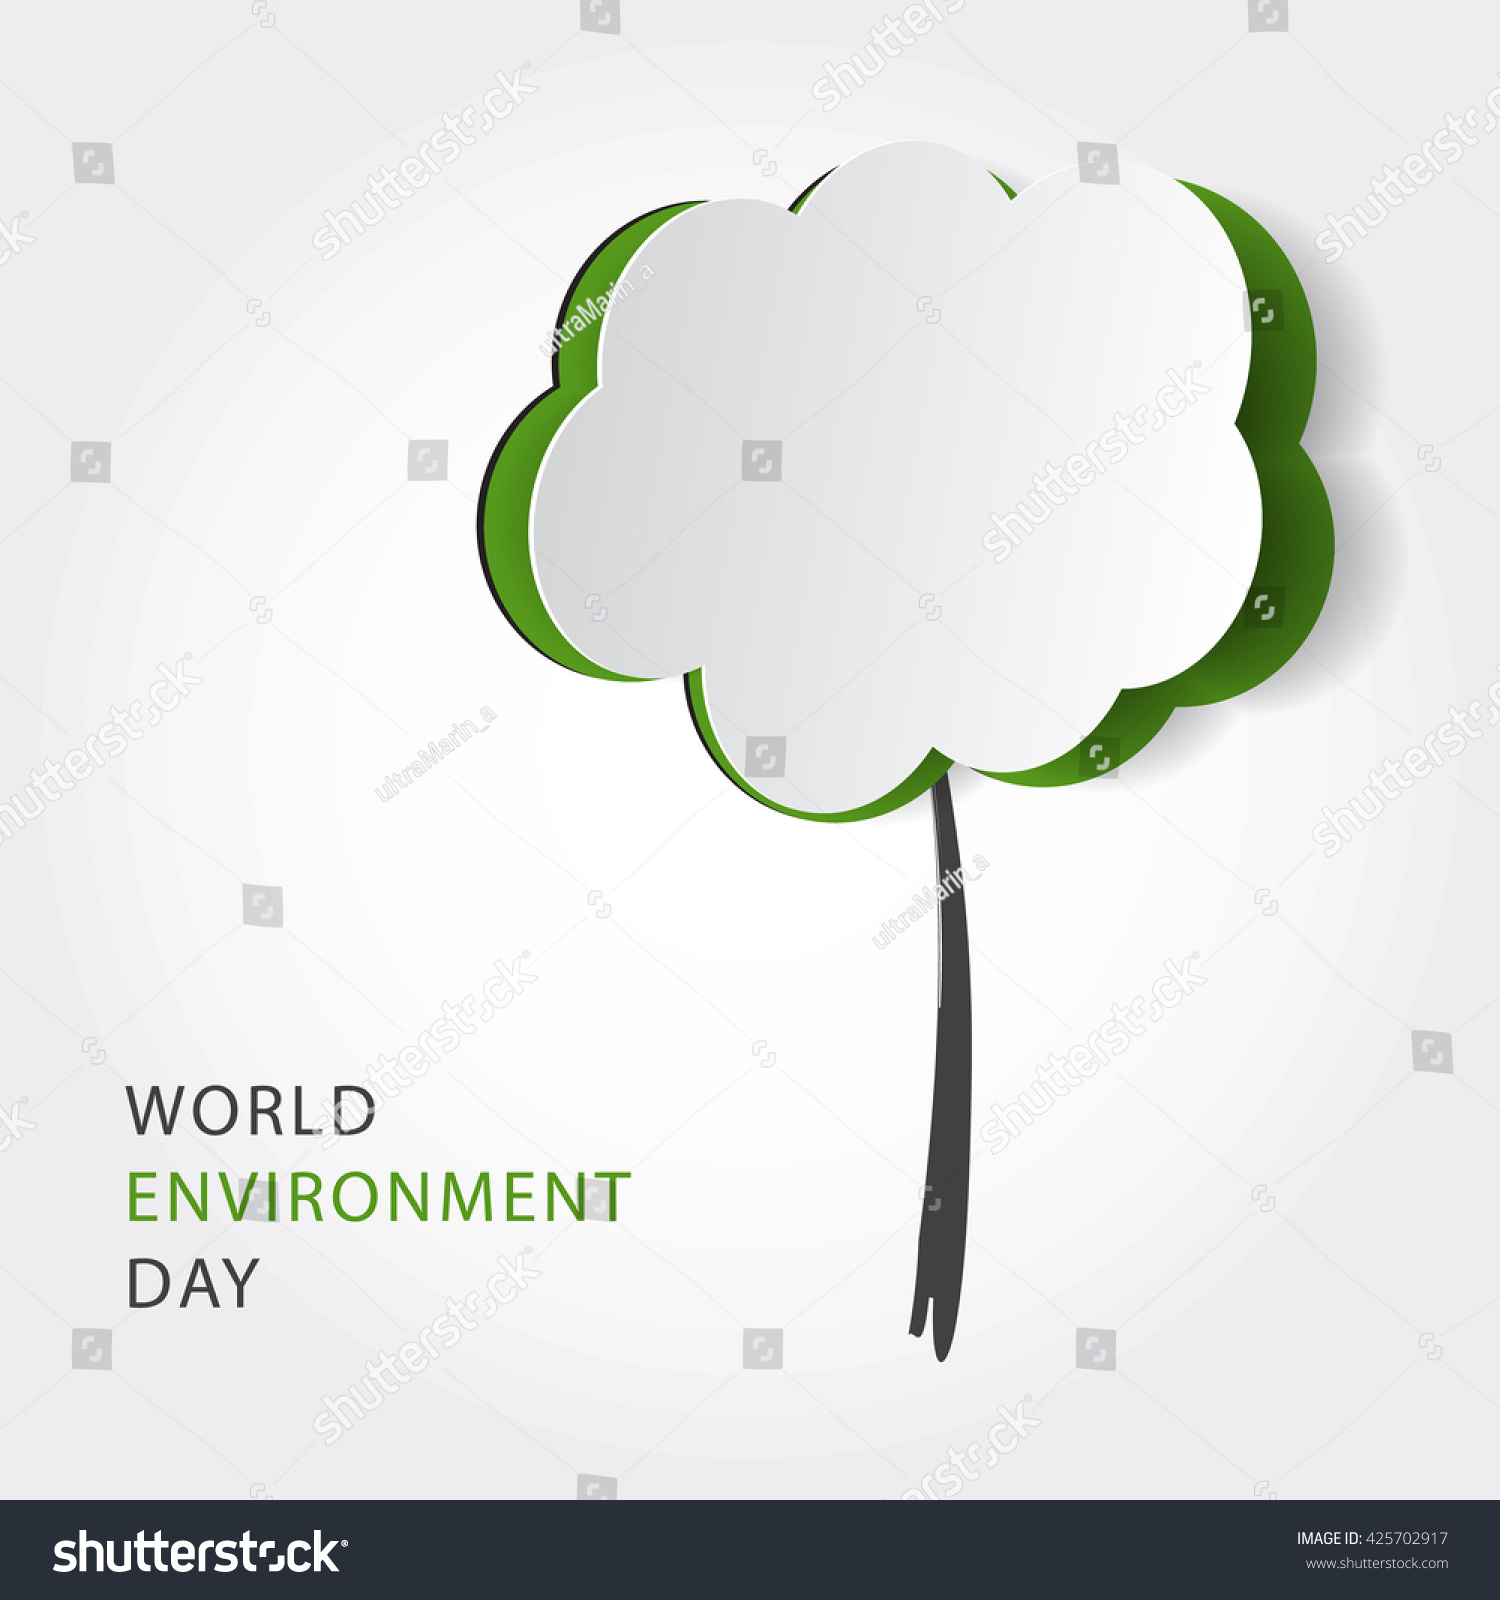 Environmental Concept Earthfriendly Landscapes: Green Eco Friendly Background Cutout Paper Stock Vector